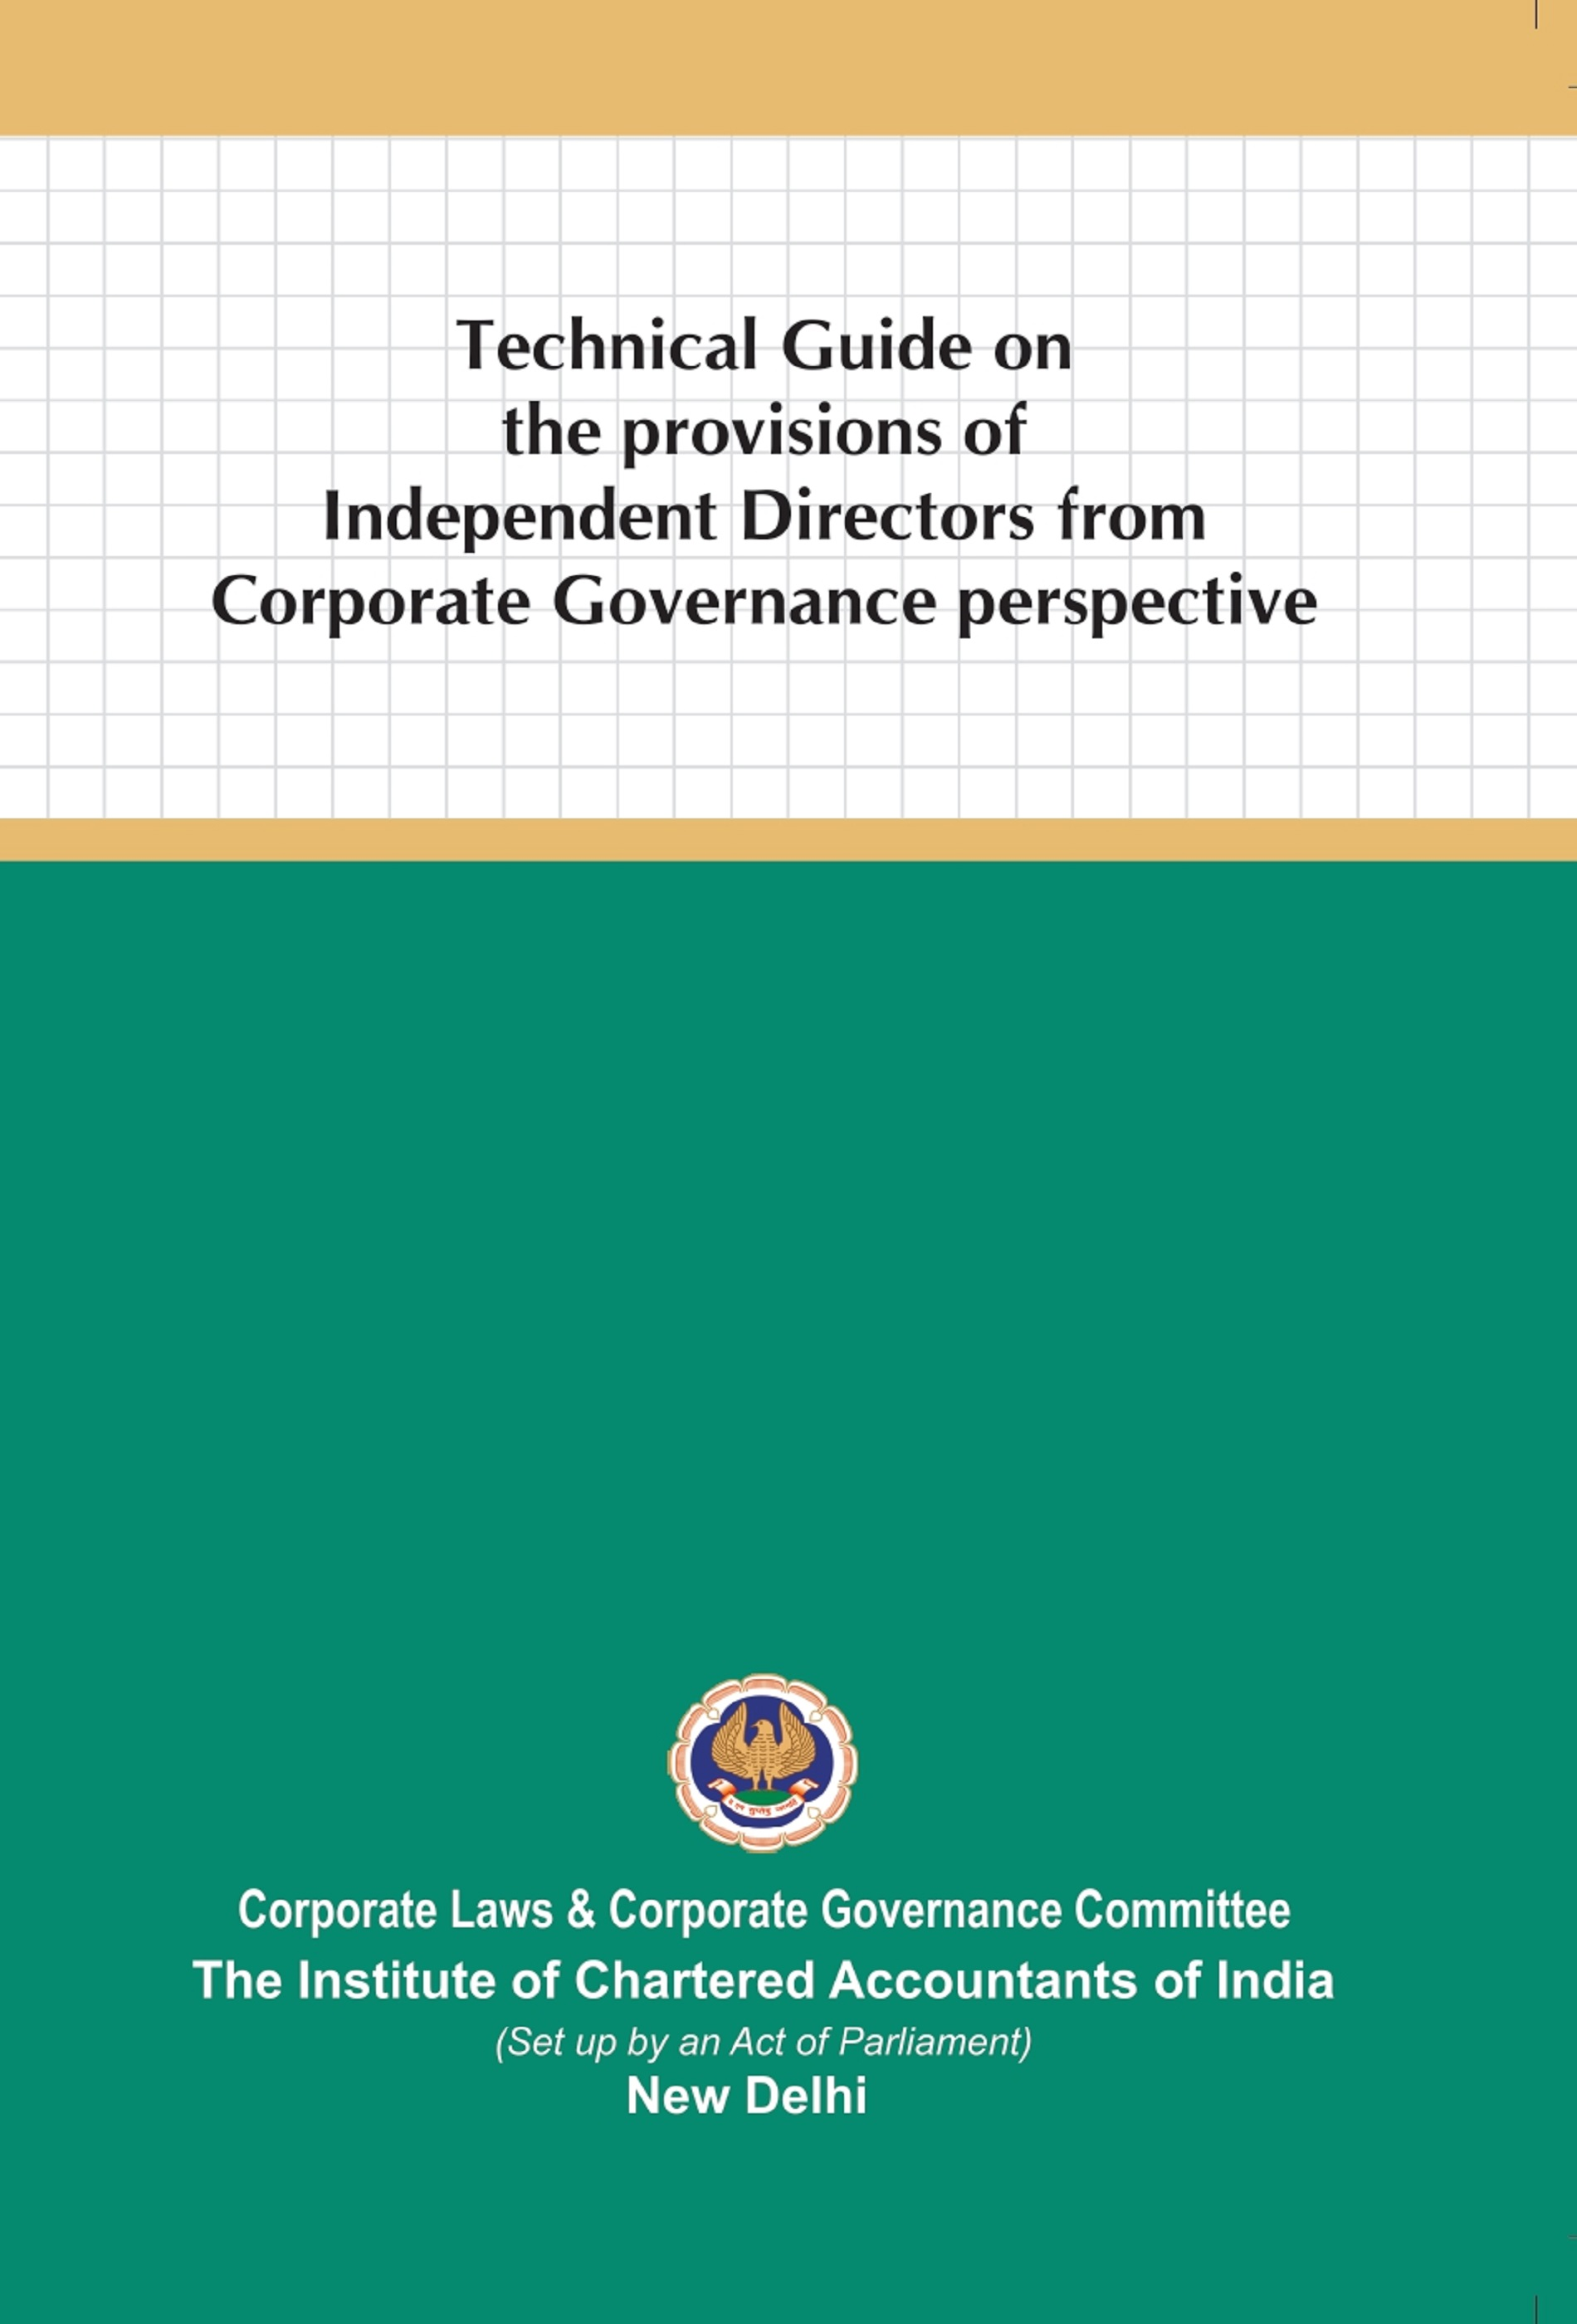 Technical Guide on the provisions of Independent Directors from Corporate Governance Perspective (January, 2021)